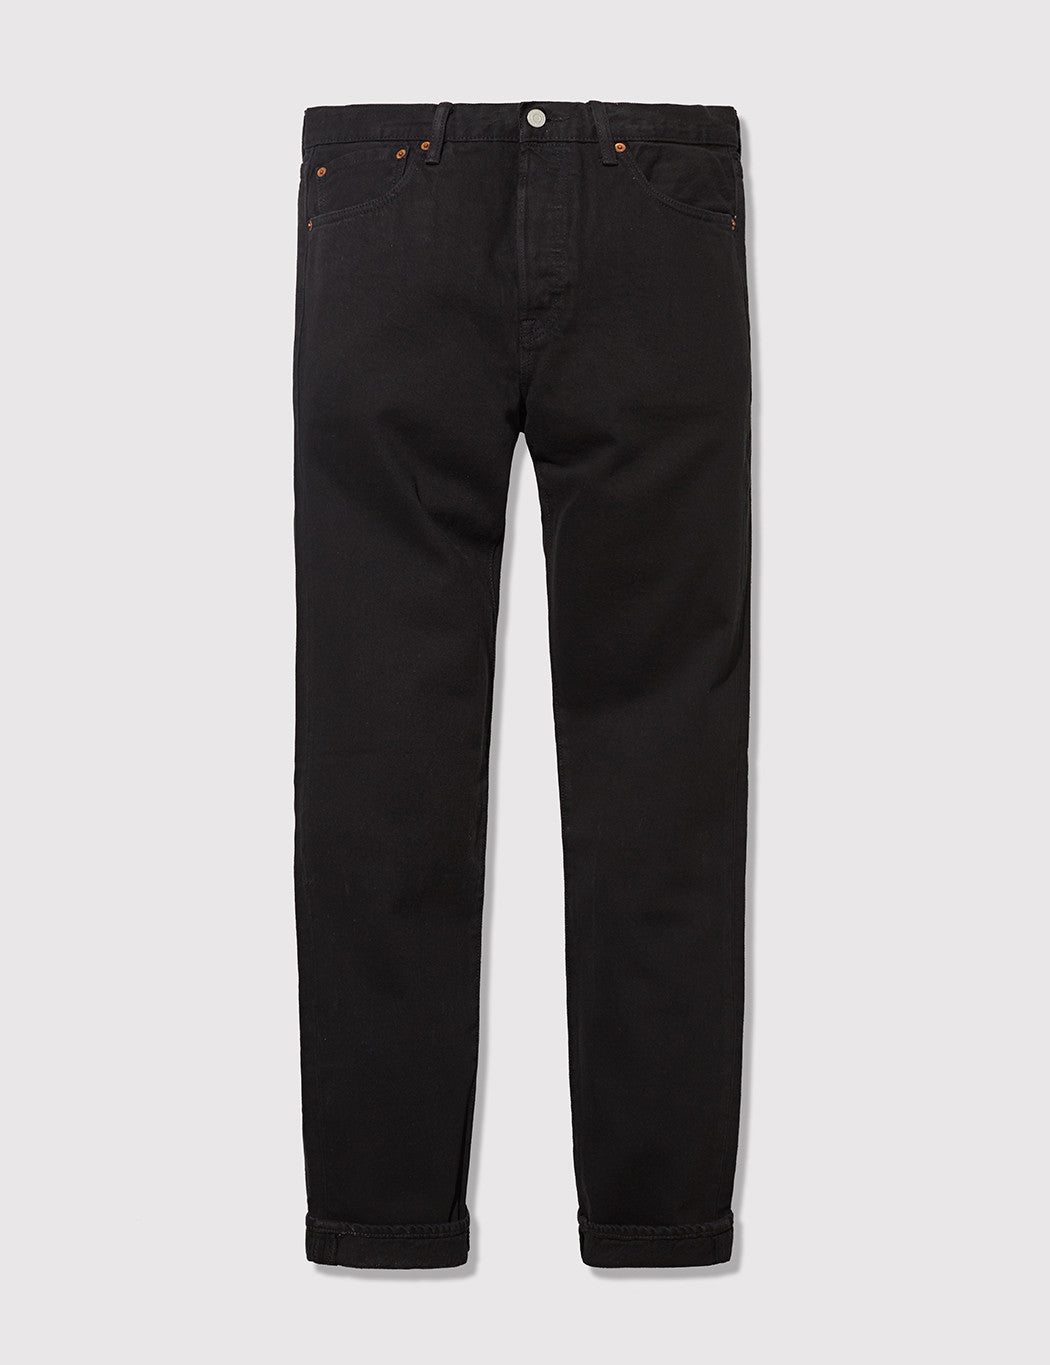 Levis 501 Jeans (Regular) - Black